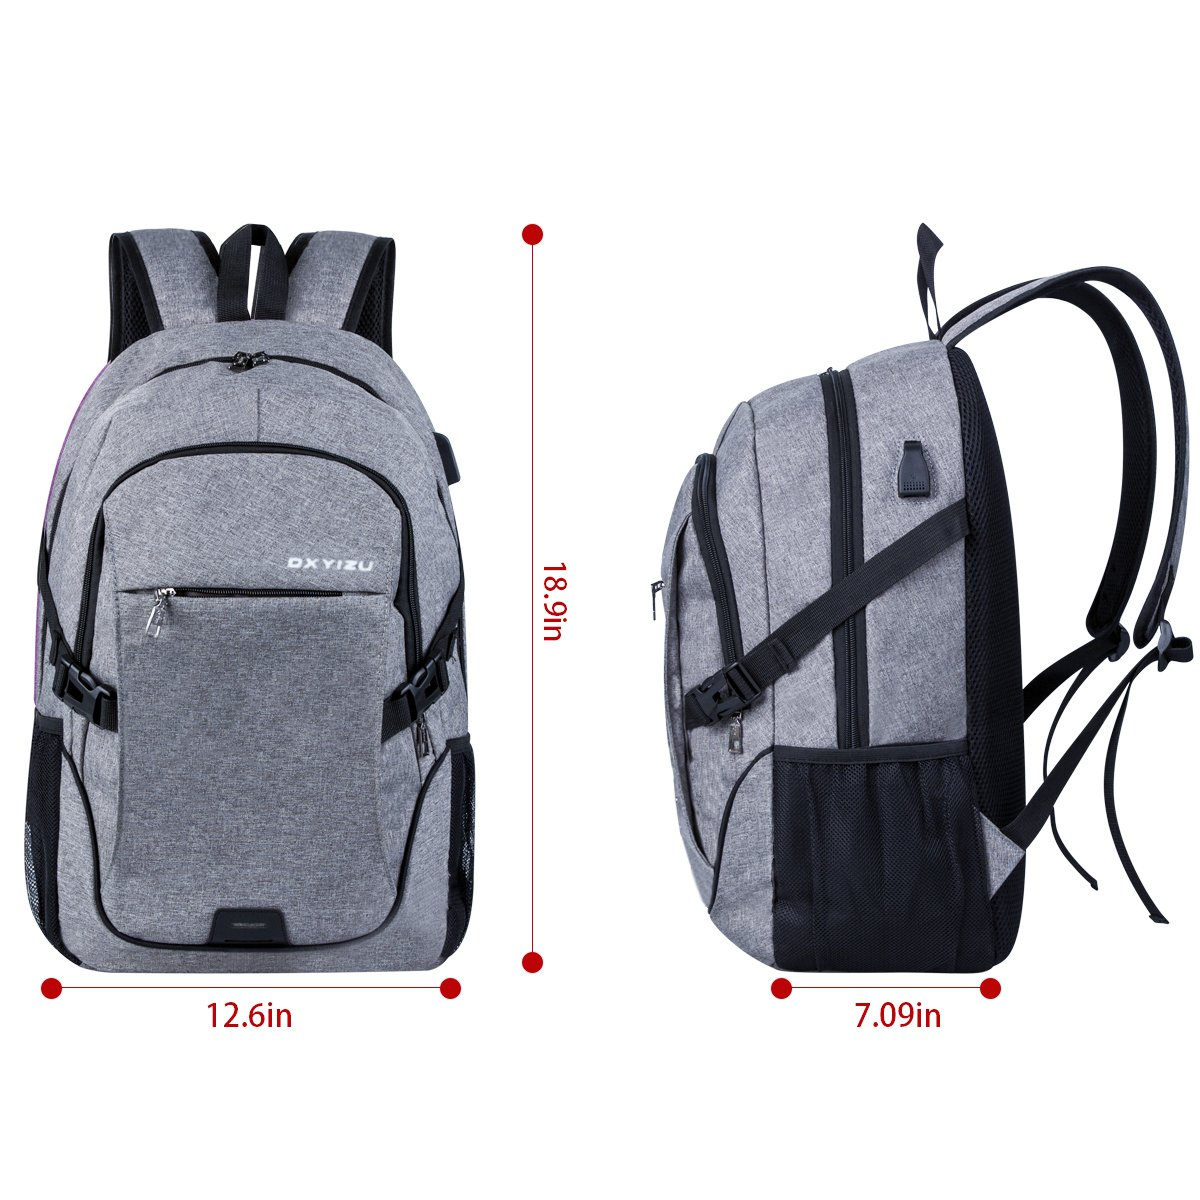 Laptop Backpack Waterproof Computer Travel Backpack with USB Charging Port Fits